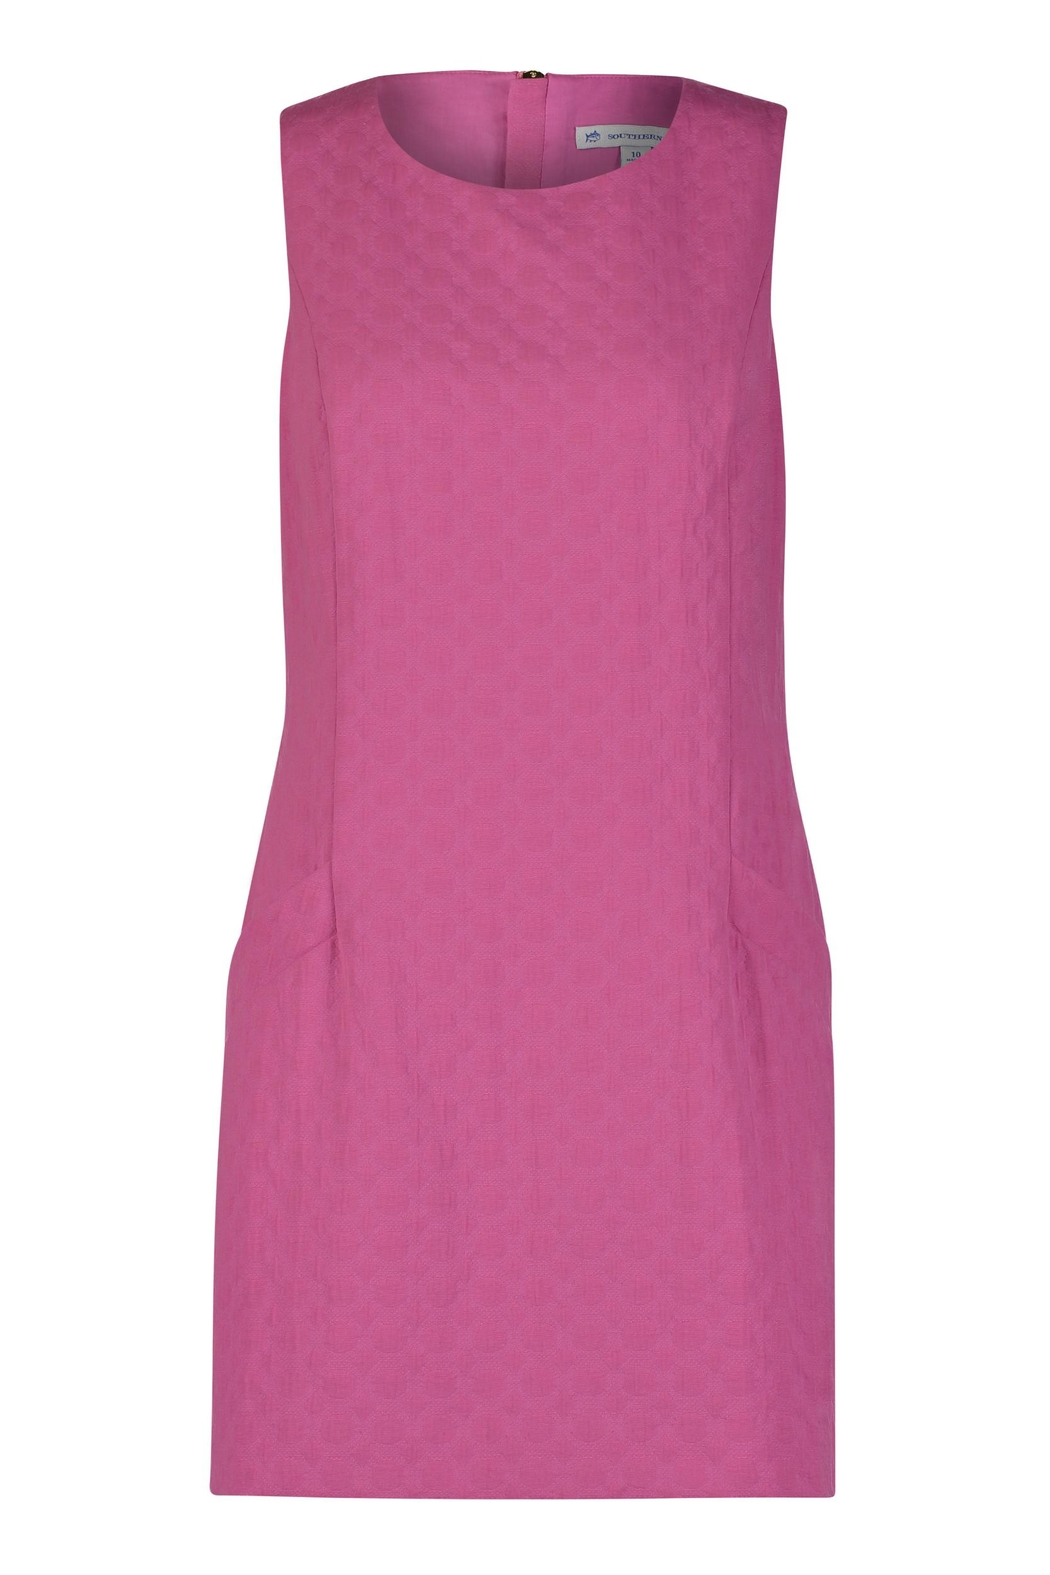 Southern Tide Pink Shift Dress - Main Image